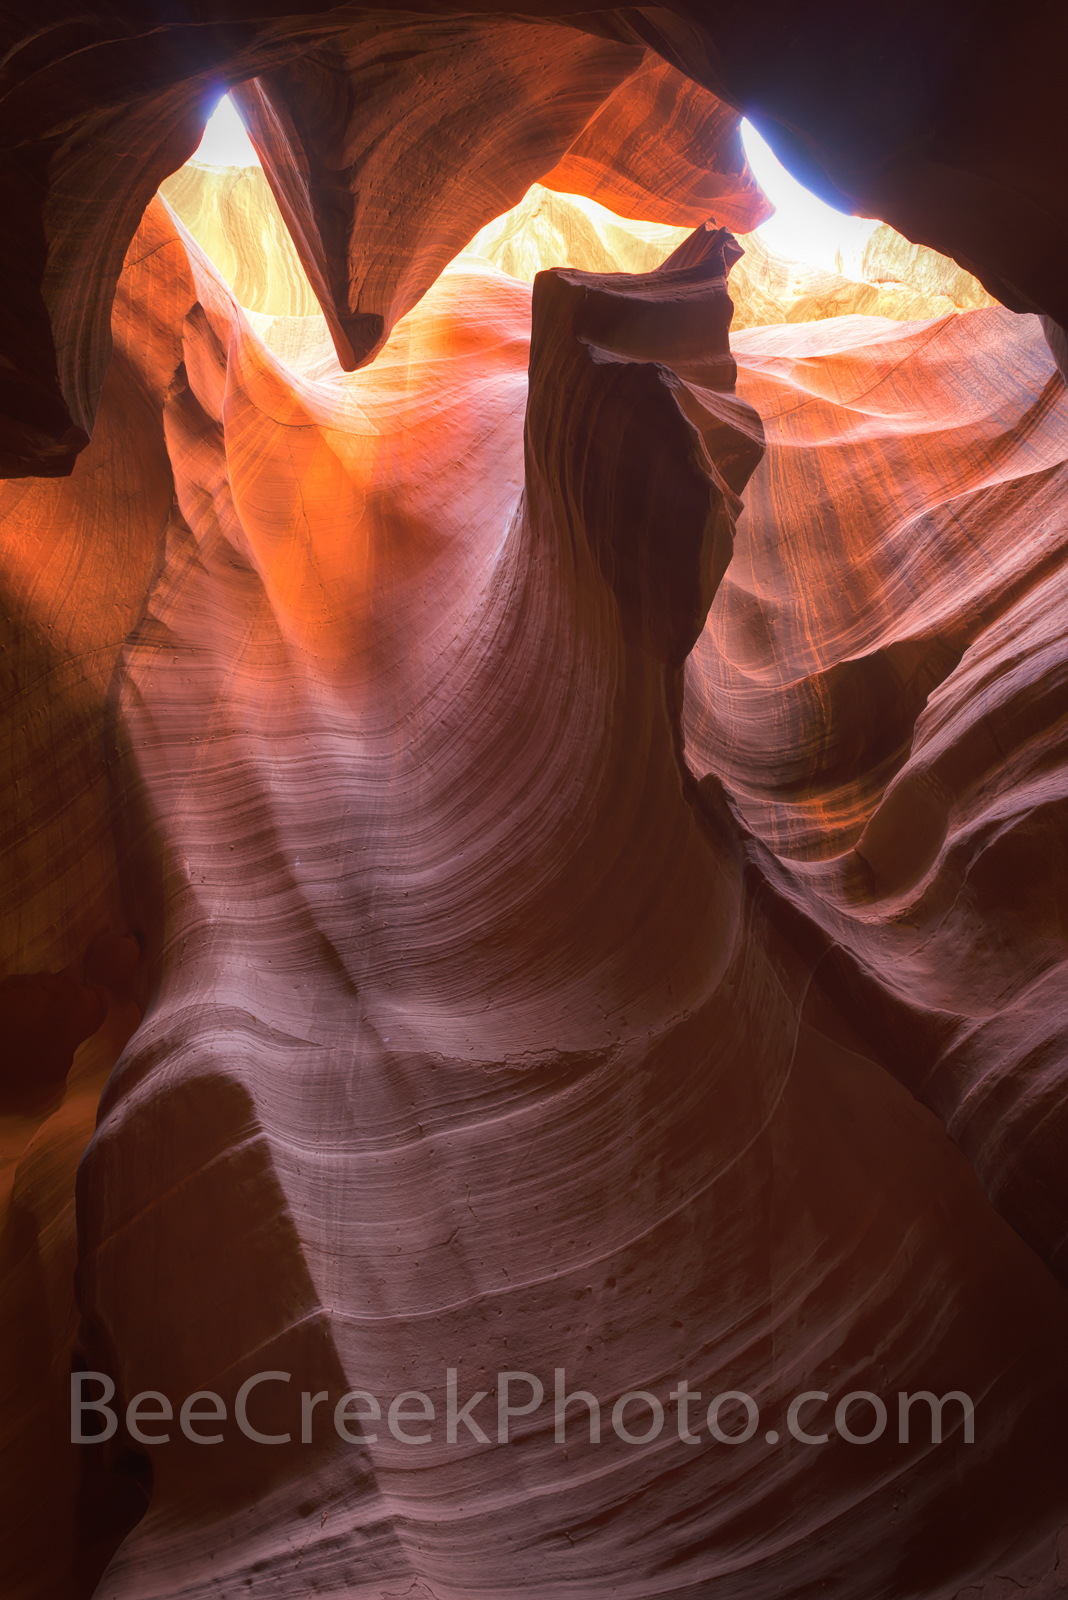 antelope canyon, colorful, navajo sandstone, flash floods, geology, geologic, sun beam, southwest, us,  slot canyons, desert landscape, southwest landscape, american, erosion, slot, flowing rocks, fla, photo